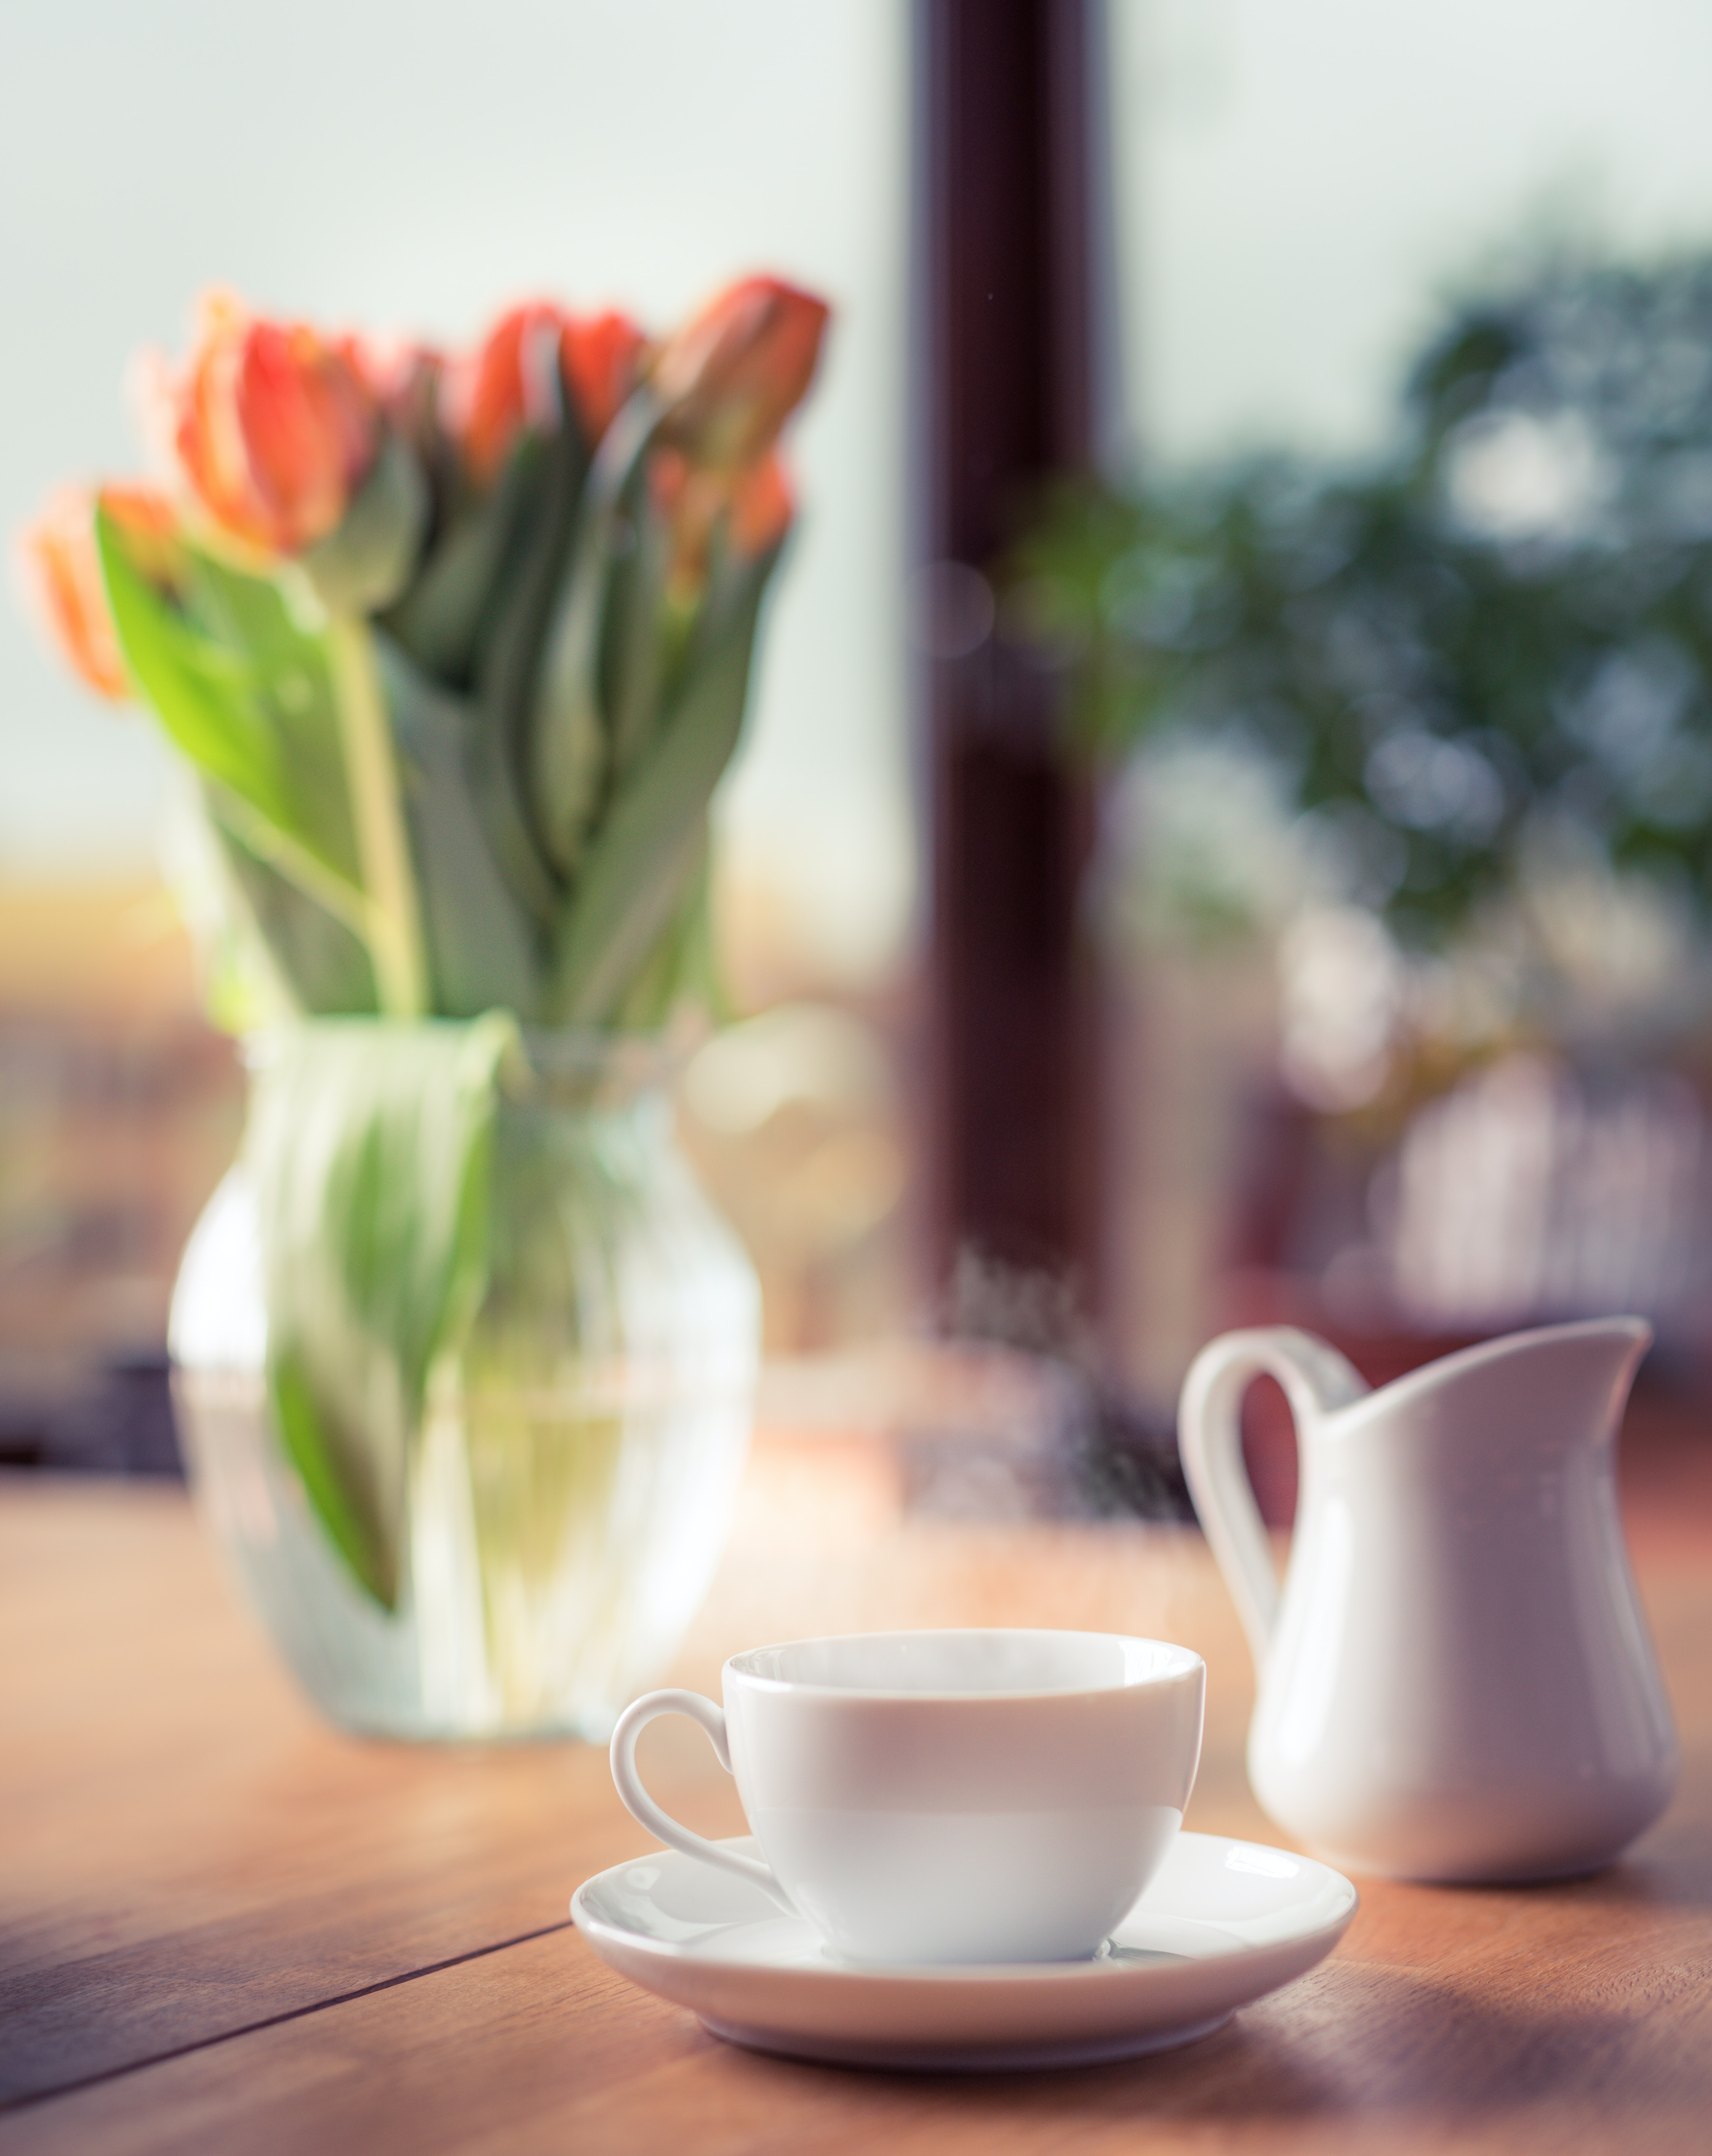 shallow depth of field photo of white teacup on saucer